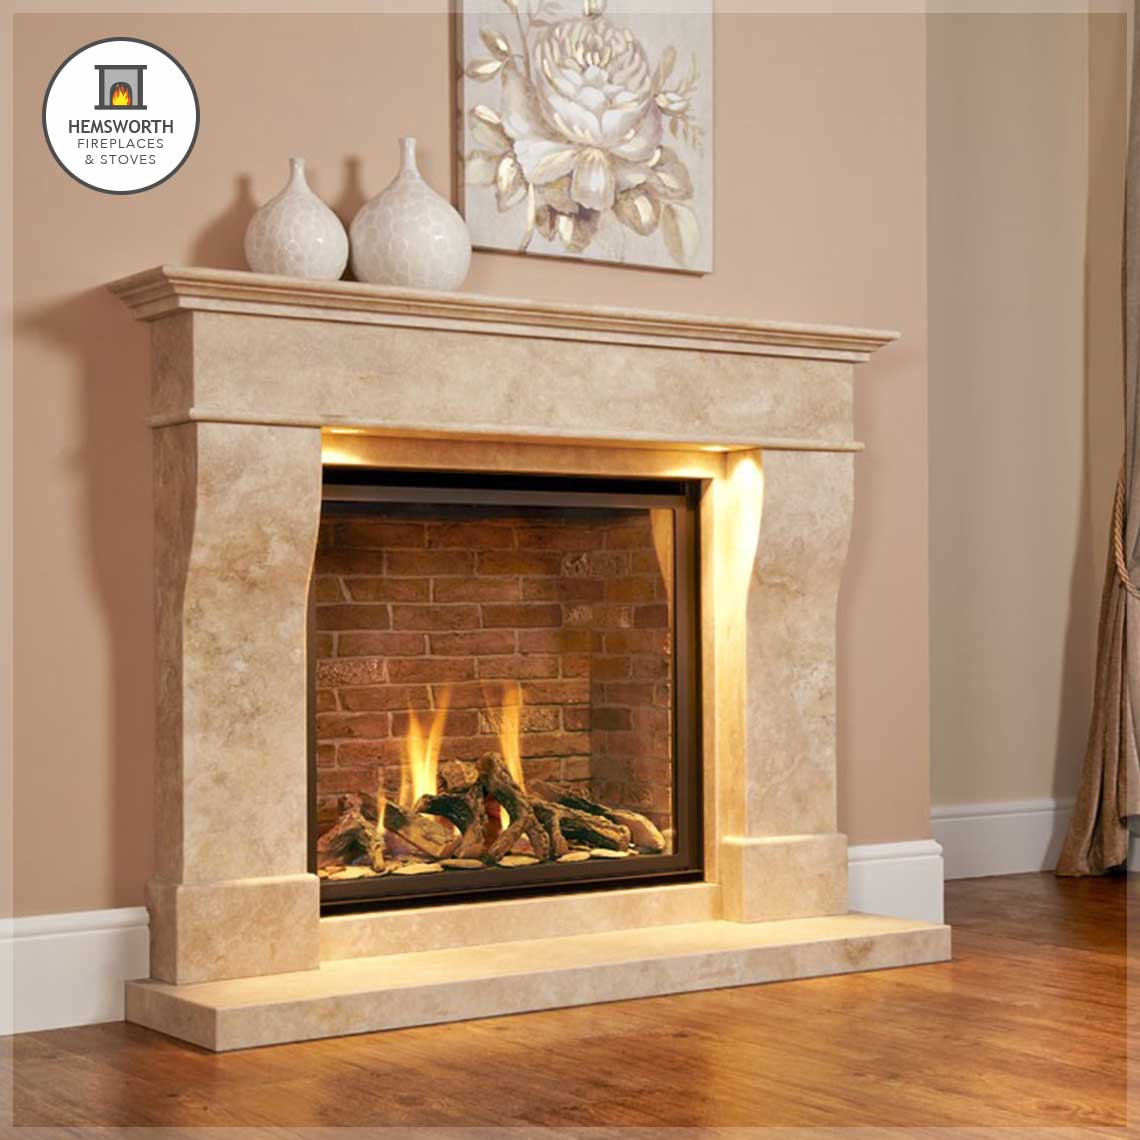 Hemsworth Fireplaces EcoTech Stoves Michael Miller fireplace